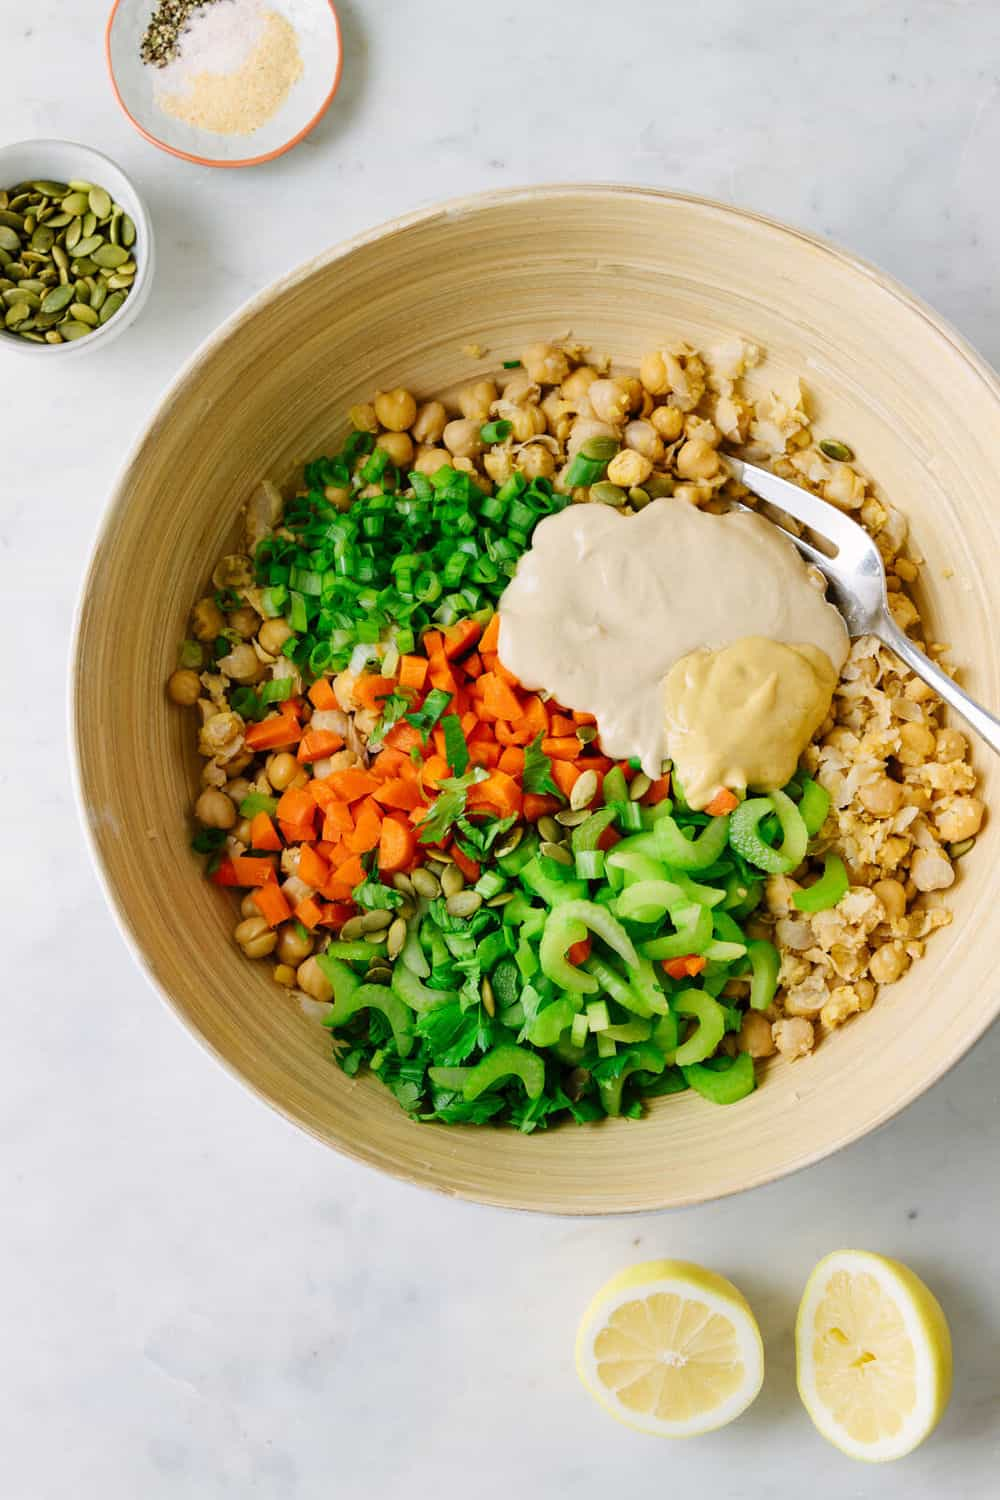 mashed chickpea salad being combined in a large serving bowl